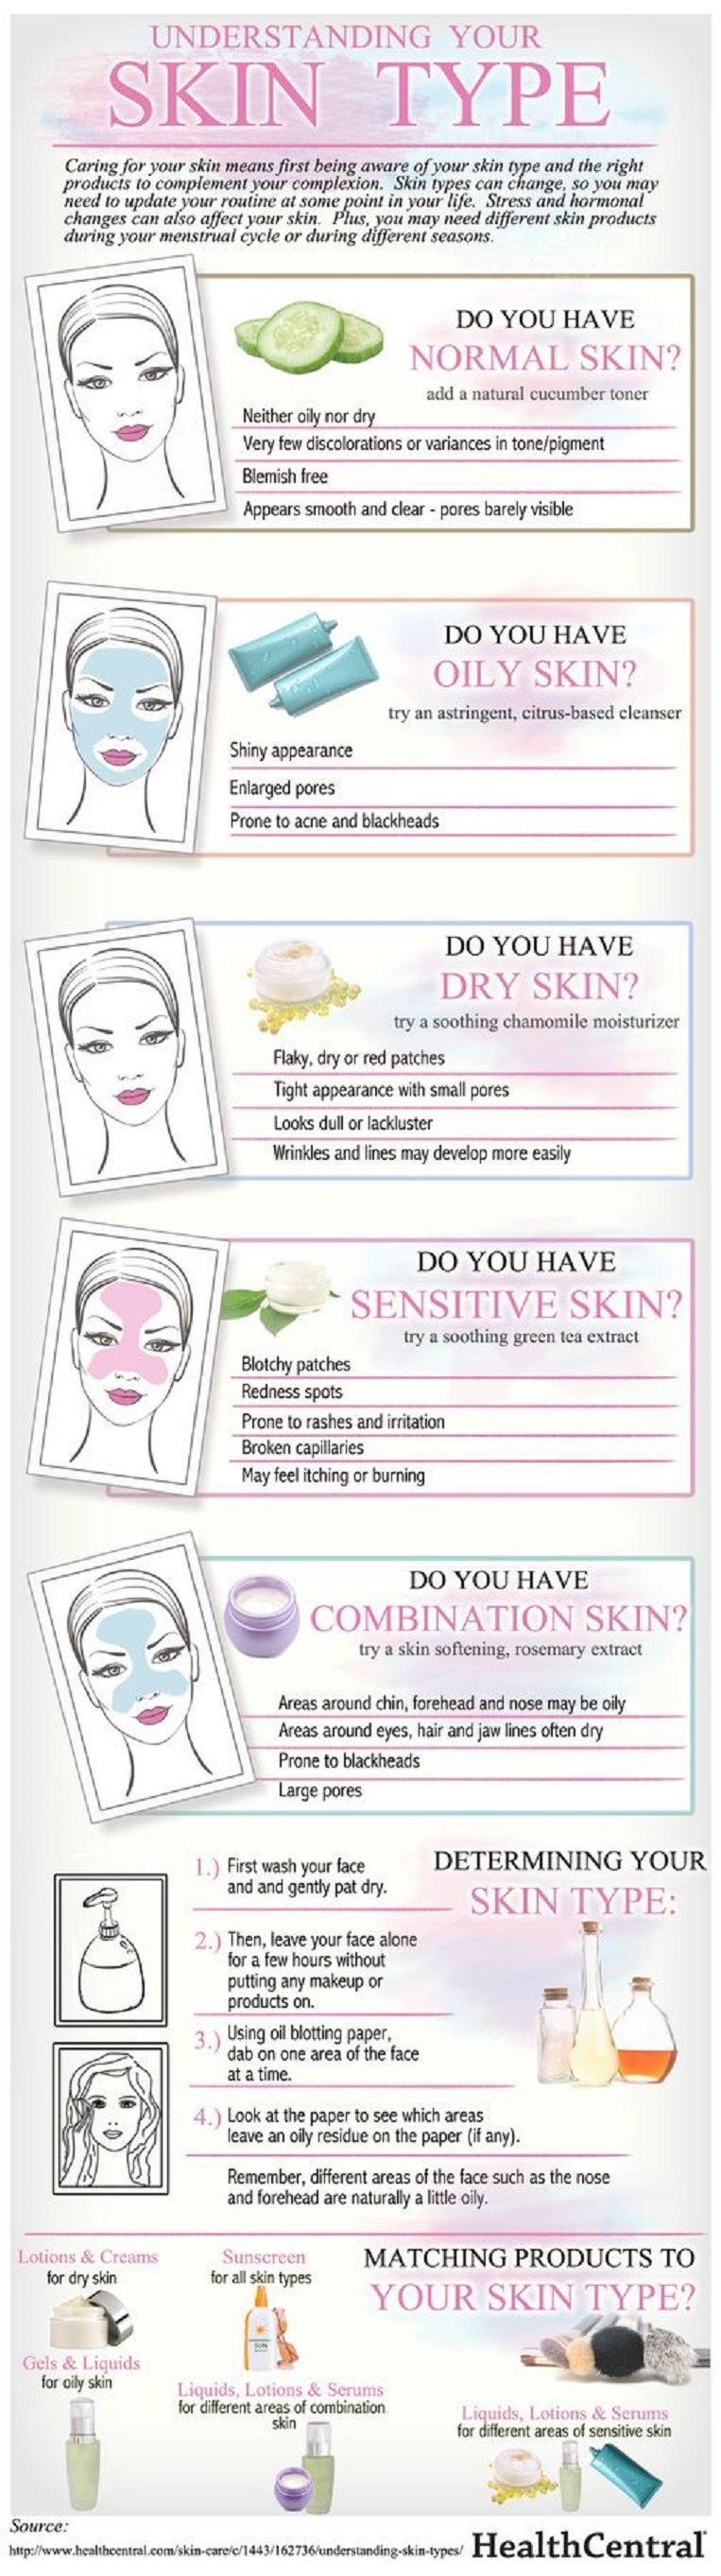 Makeup Tips for Your Skin Type 52